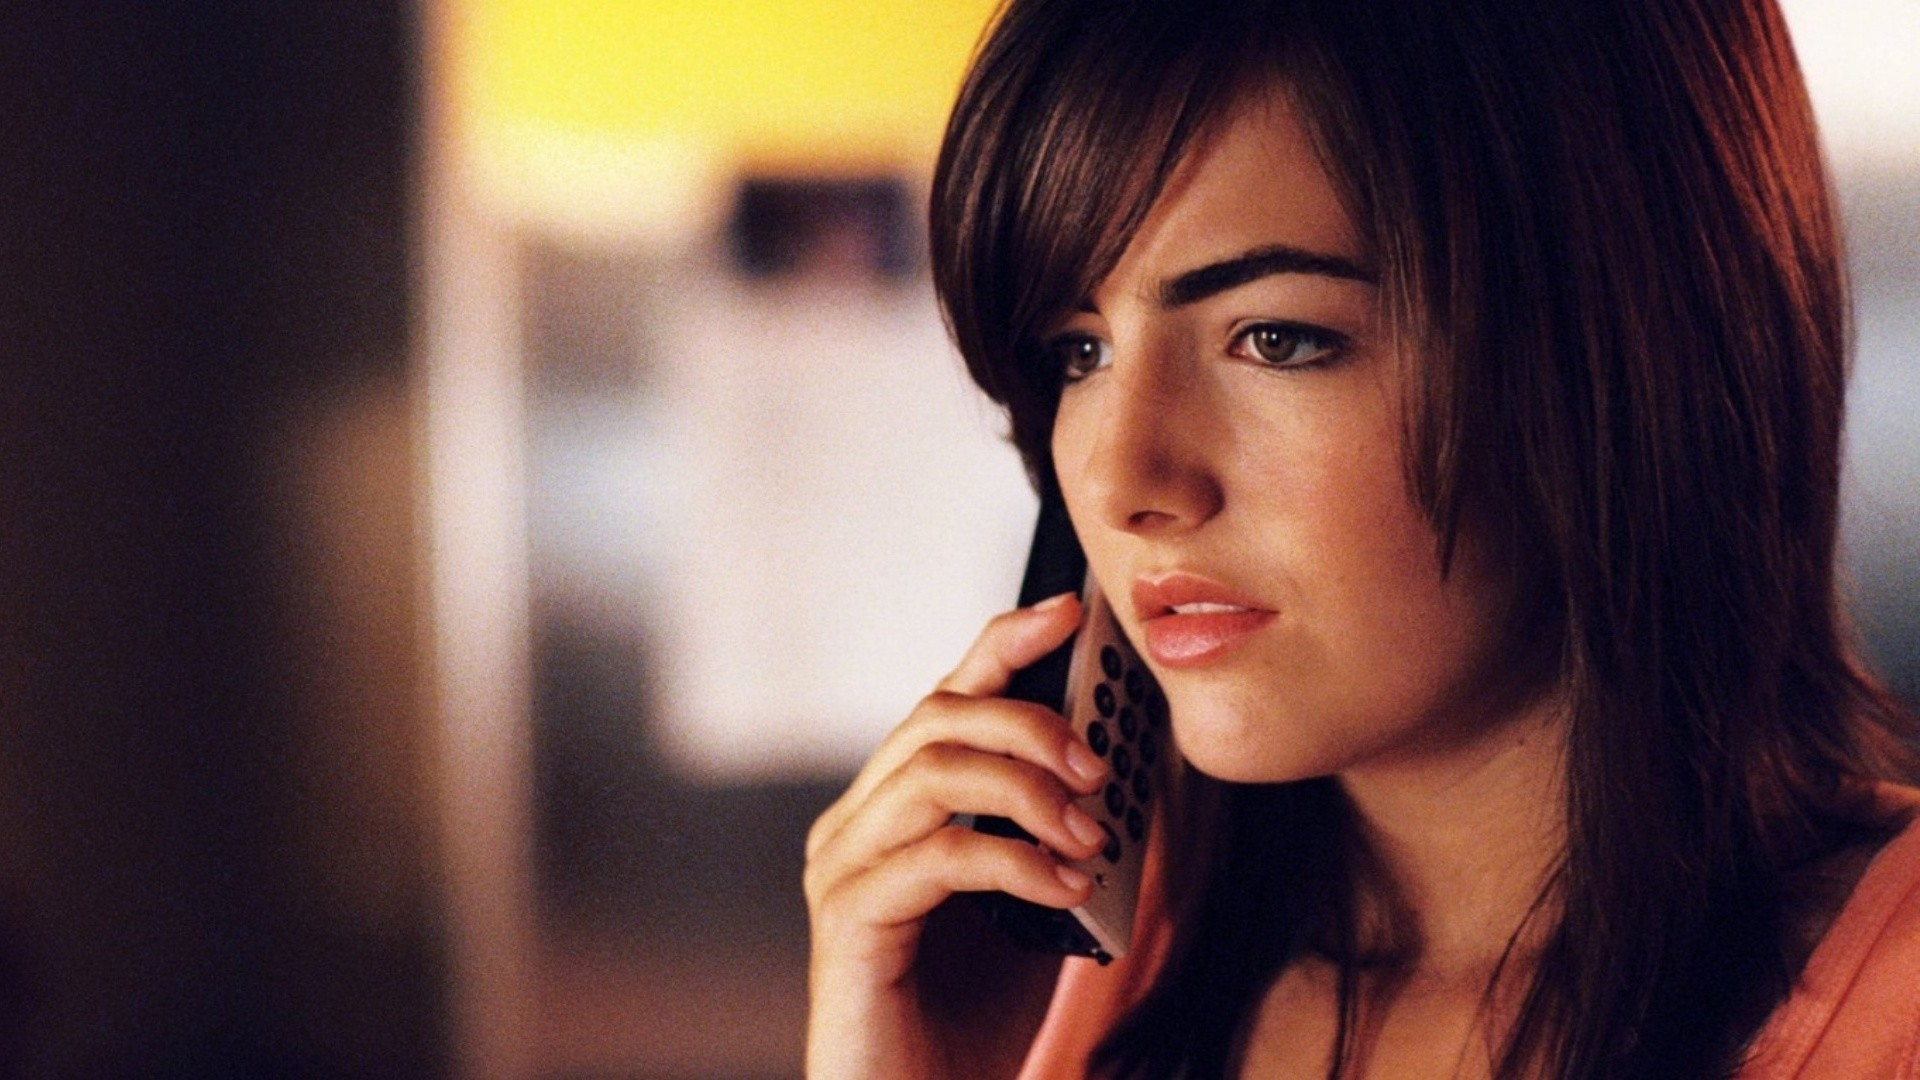 Res: 1920x1080, Camilla Belle Wallpapers. admin December 15, 2015 Wallpapers